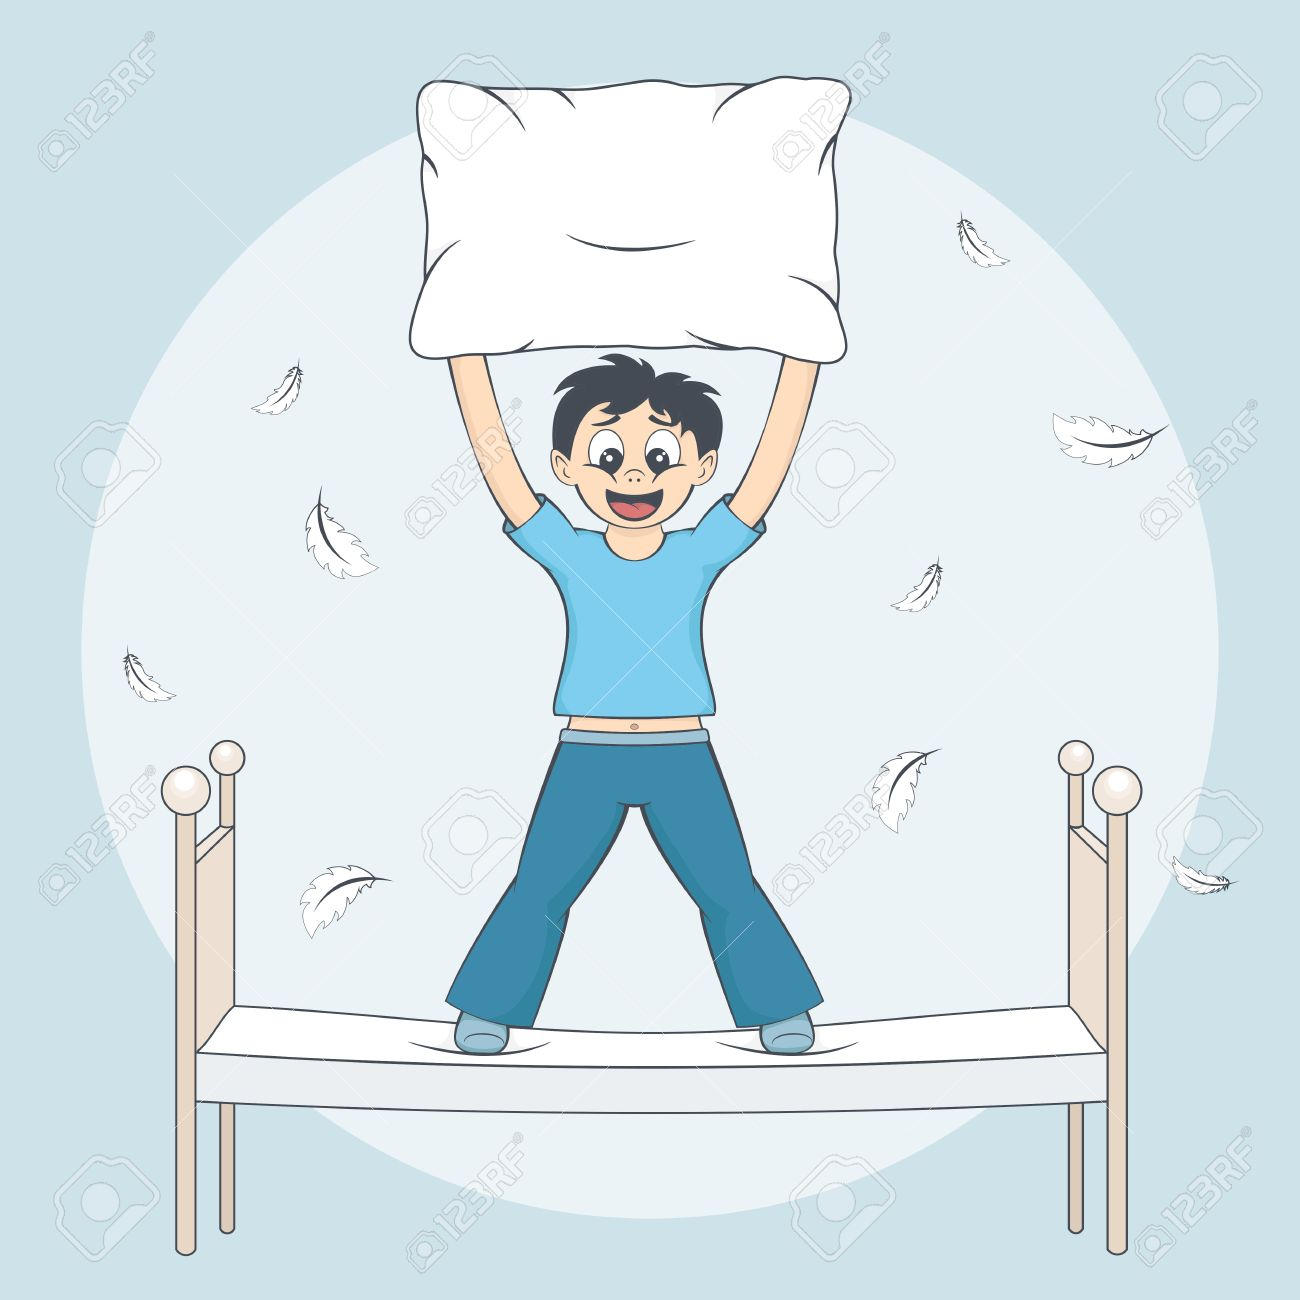 Image result for pillow fight